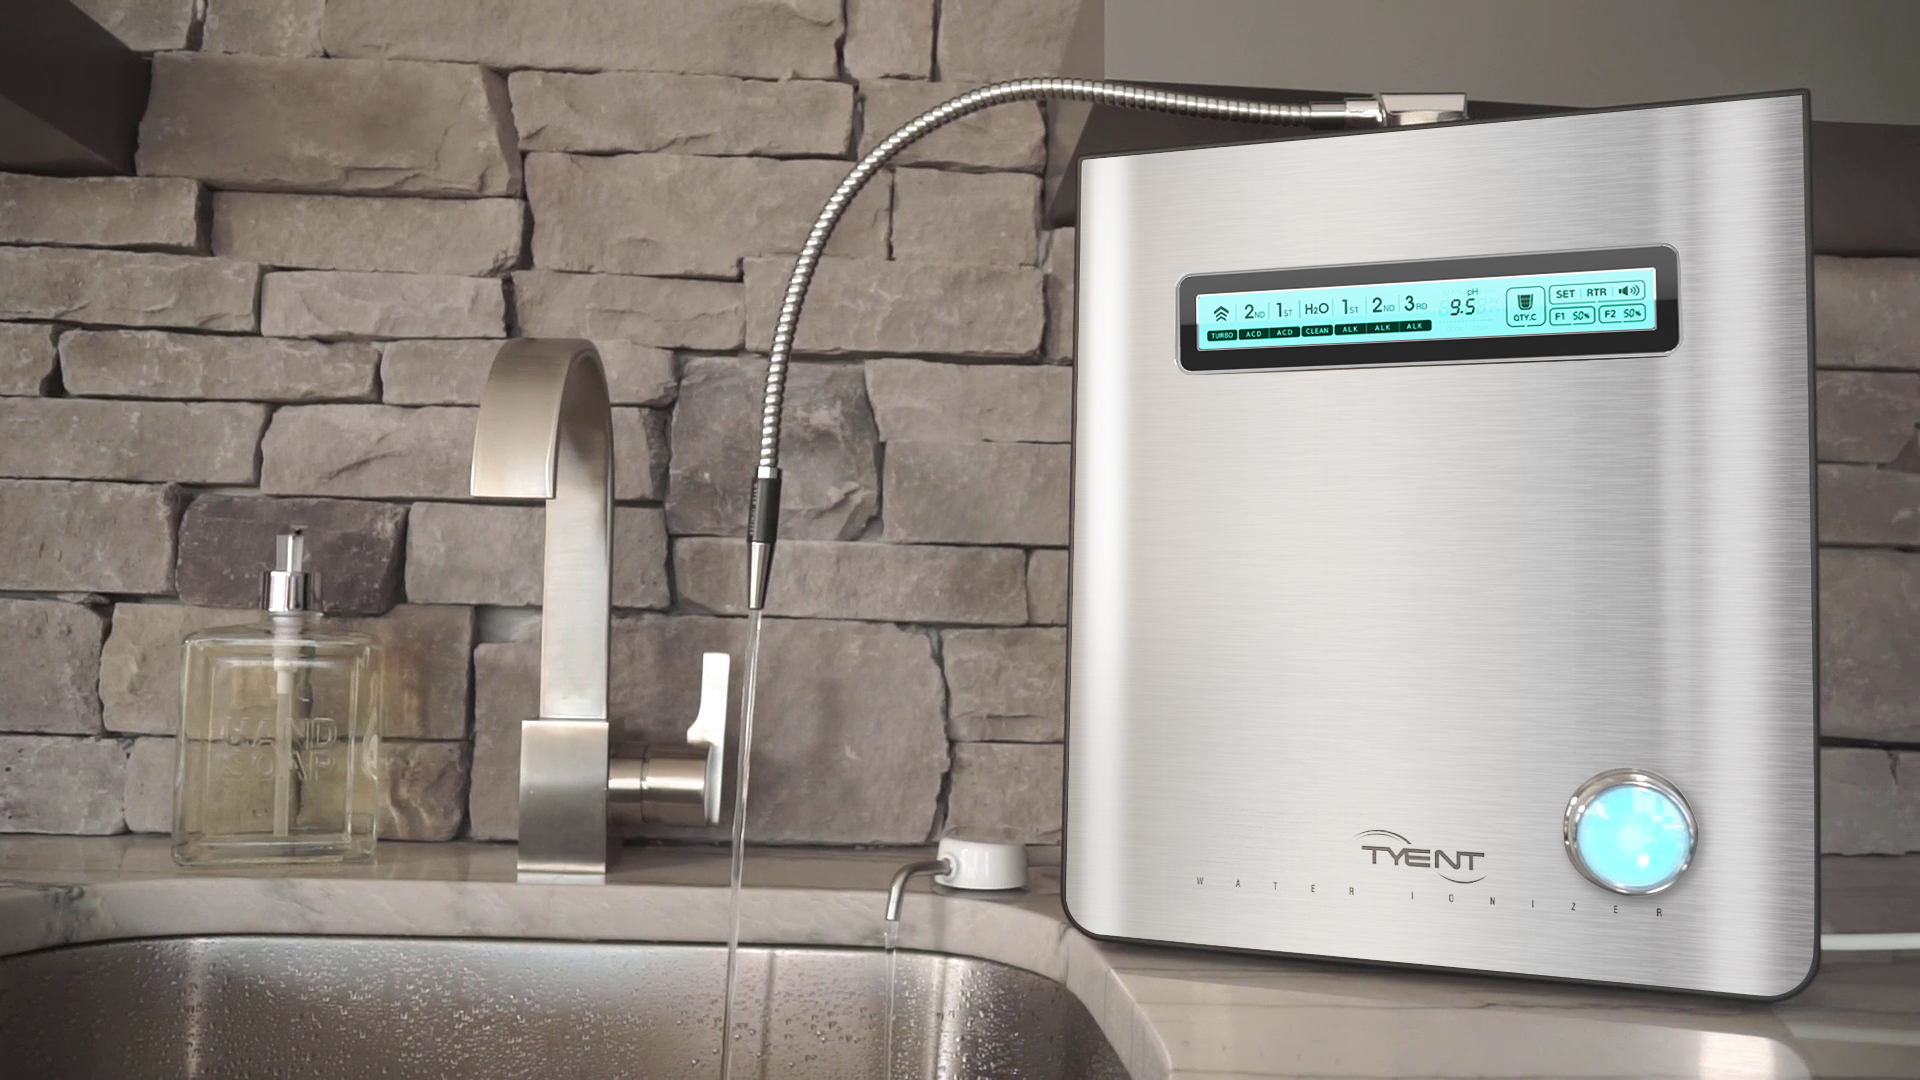 Versatility in tyent water ionizer products